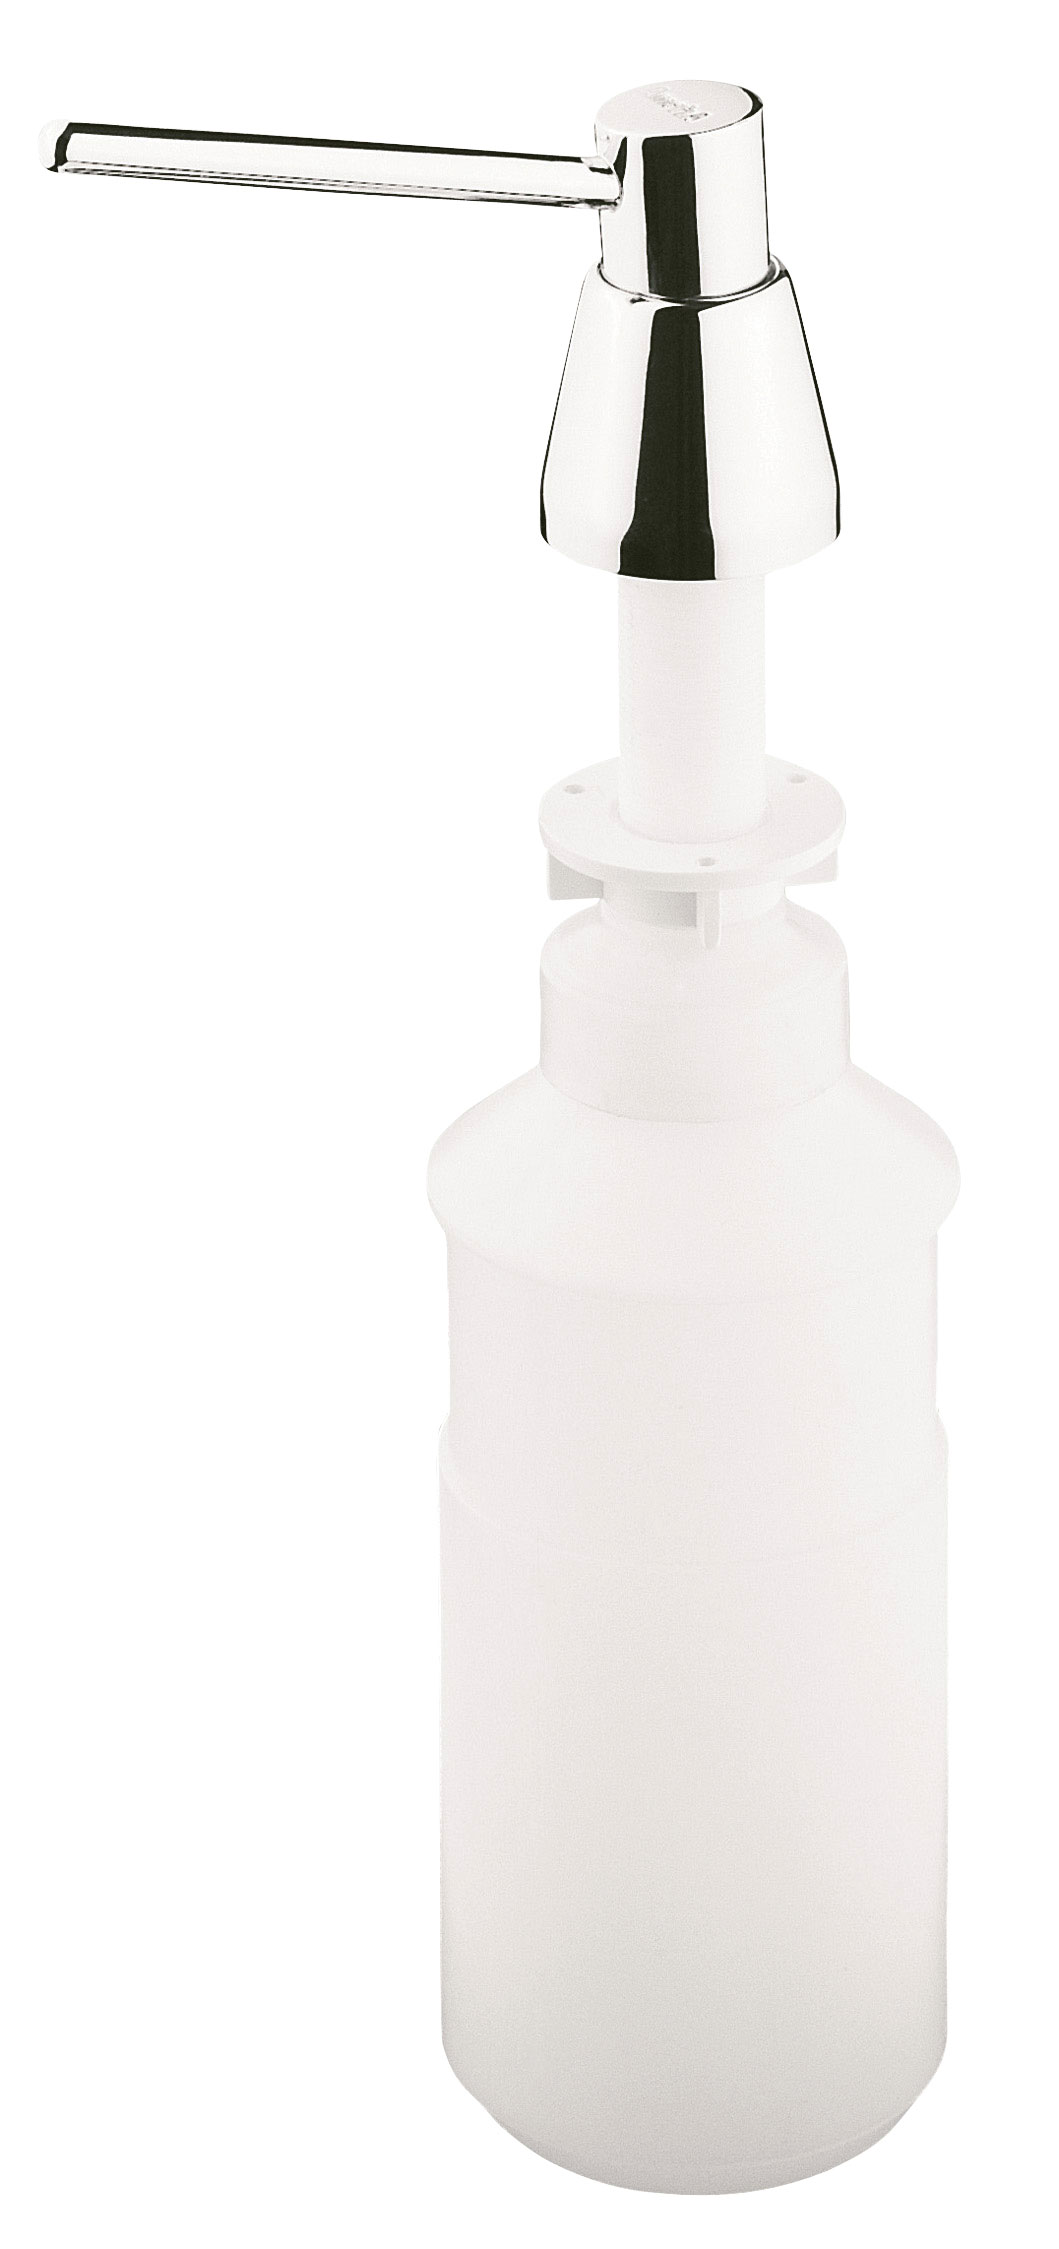 click on Liquid Soap Dispenser image to enlarge